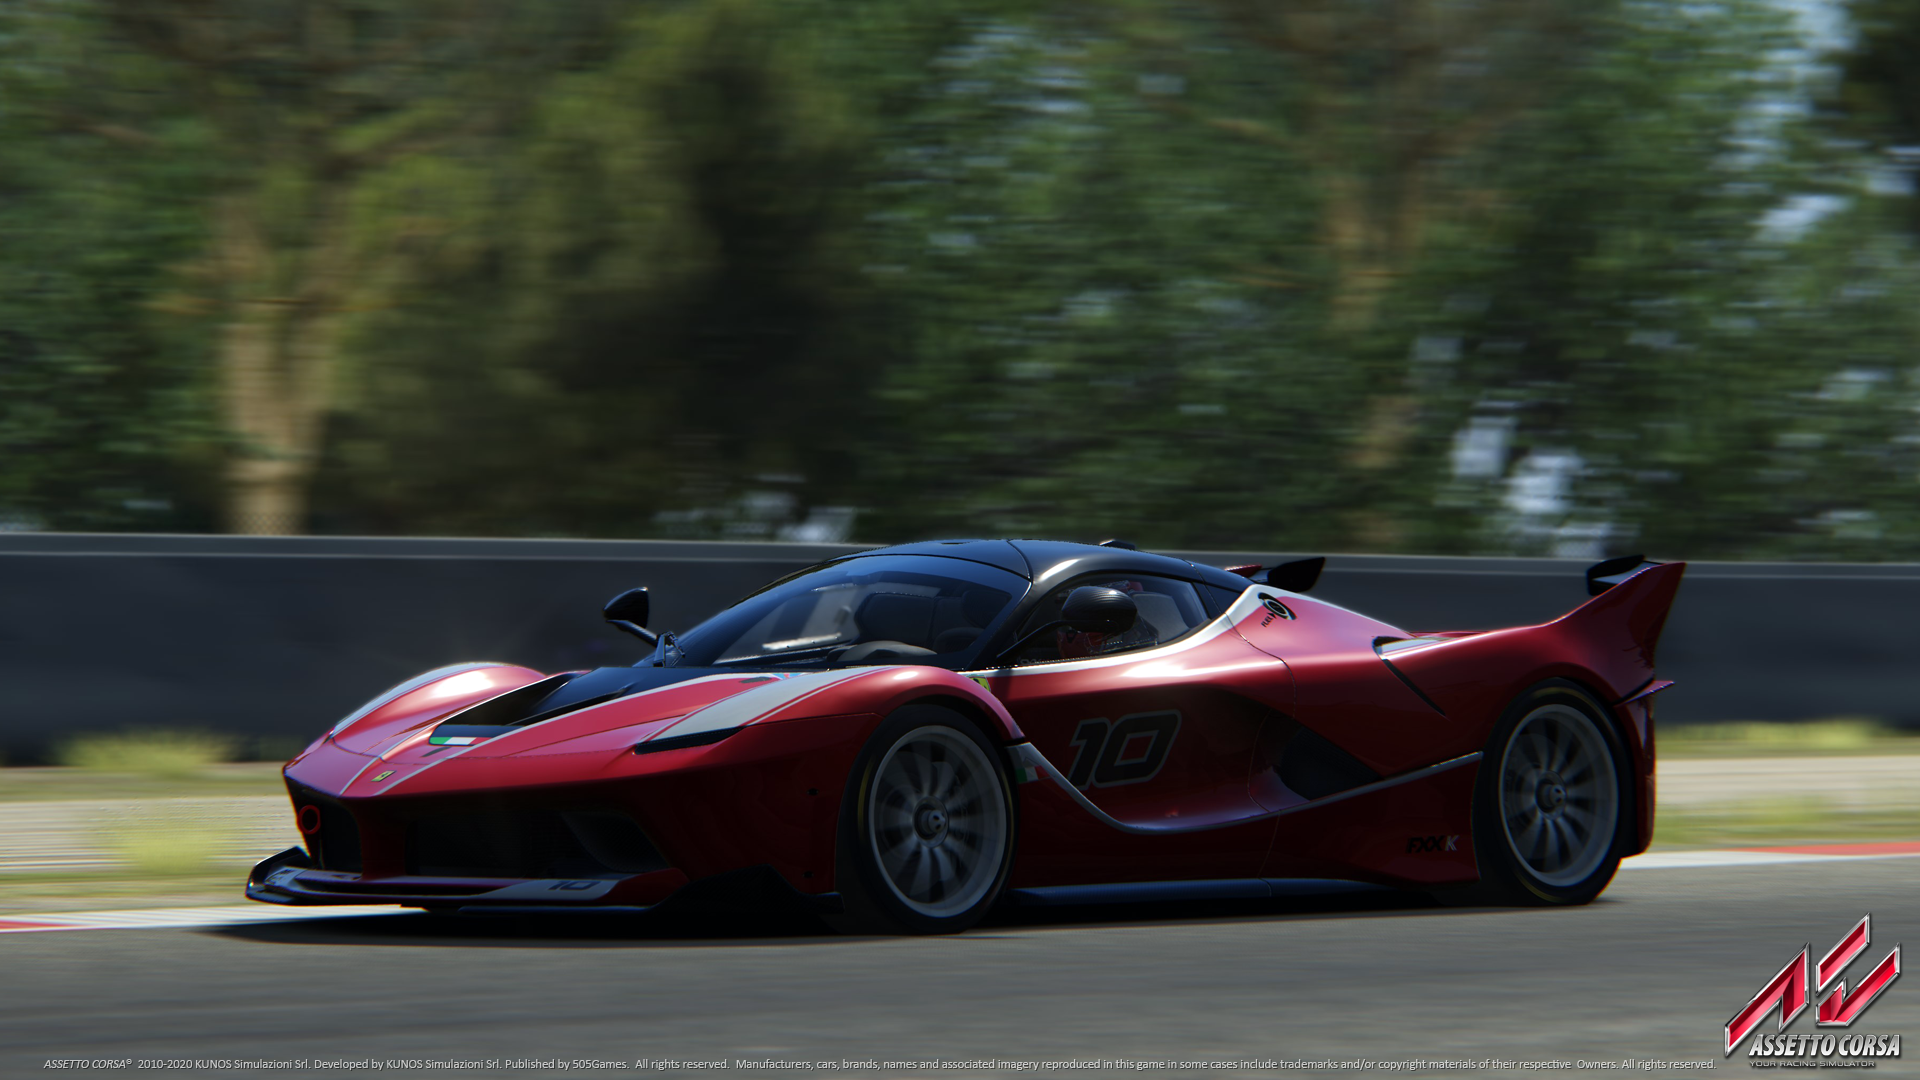 racing sim assetto corsa arrives on ps4 and xbox one in april vg247. Black Bedroom Furniture Sets. Home Design Ideas